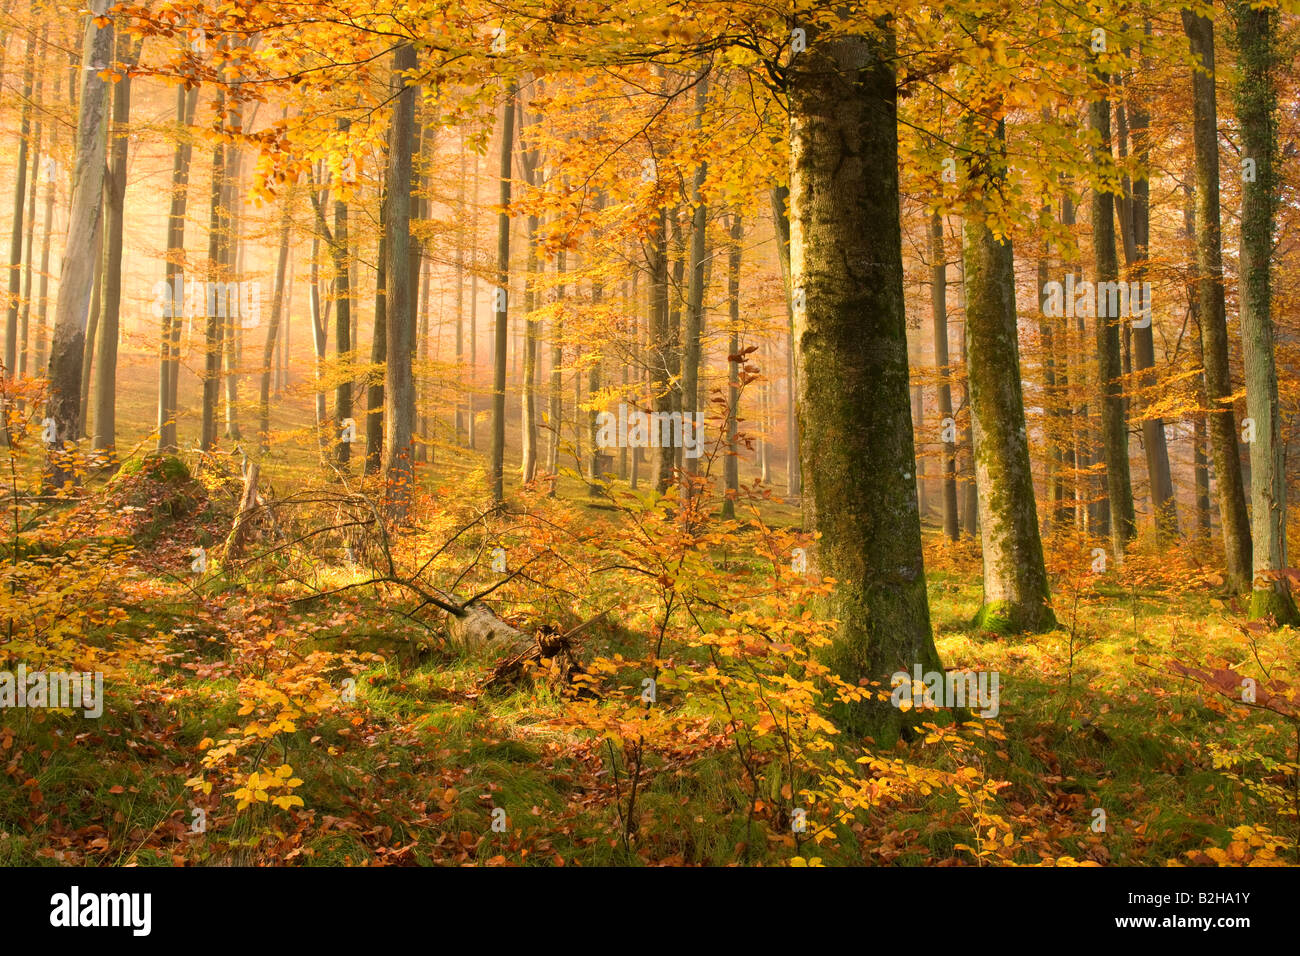 autumn forest leaves fall foliage Schwaebische Alb Germany autumnal colors colours deciduous trees - Stock Image